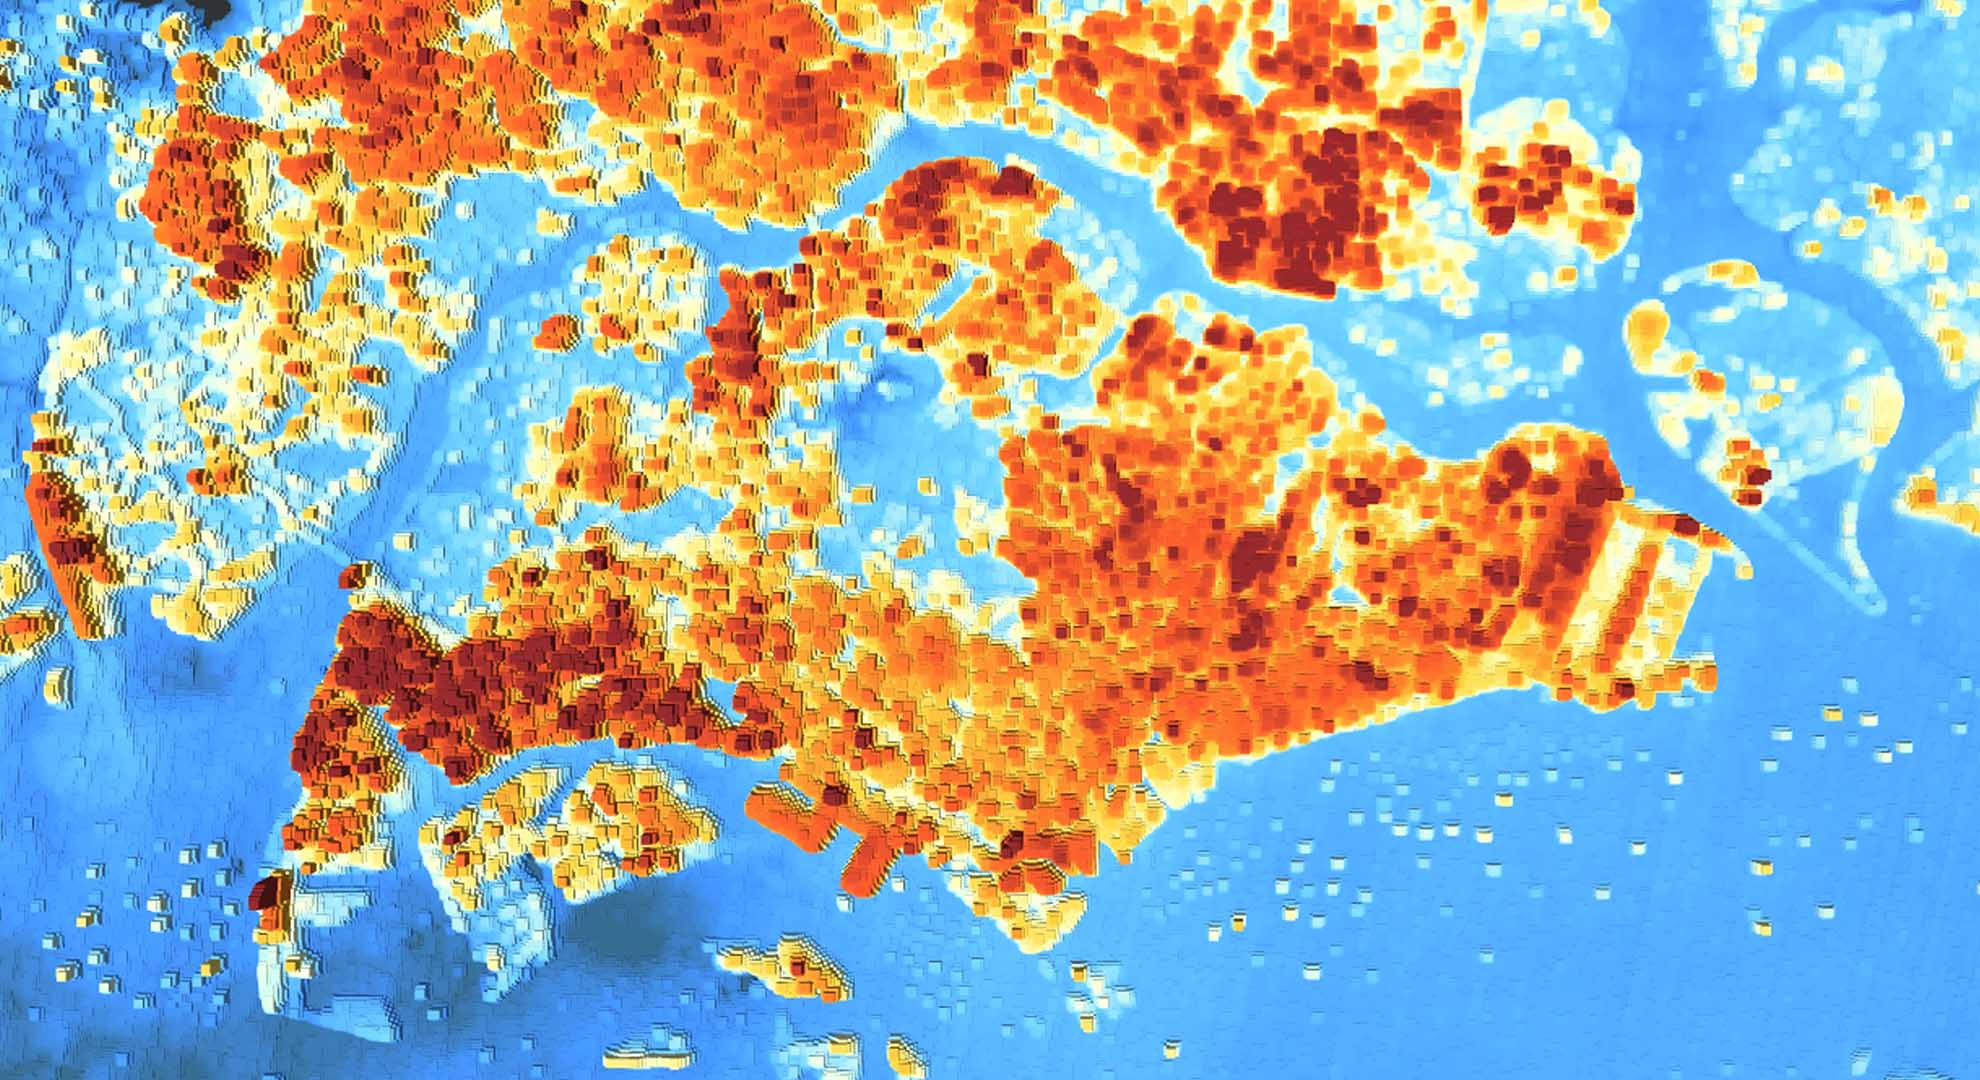 Urban Heat Island effect is particularly prevalent in tropical Singapore, the world's third most densely populated country